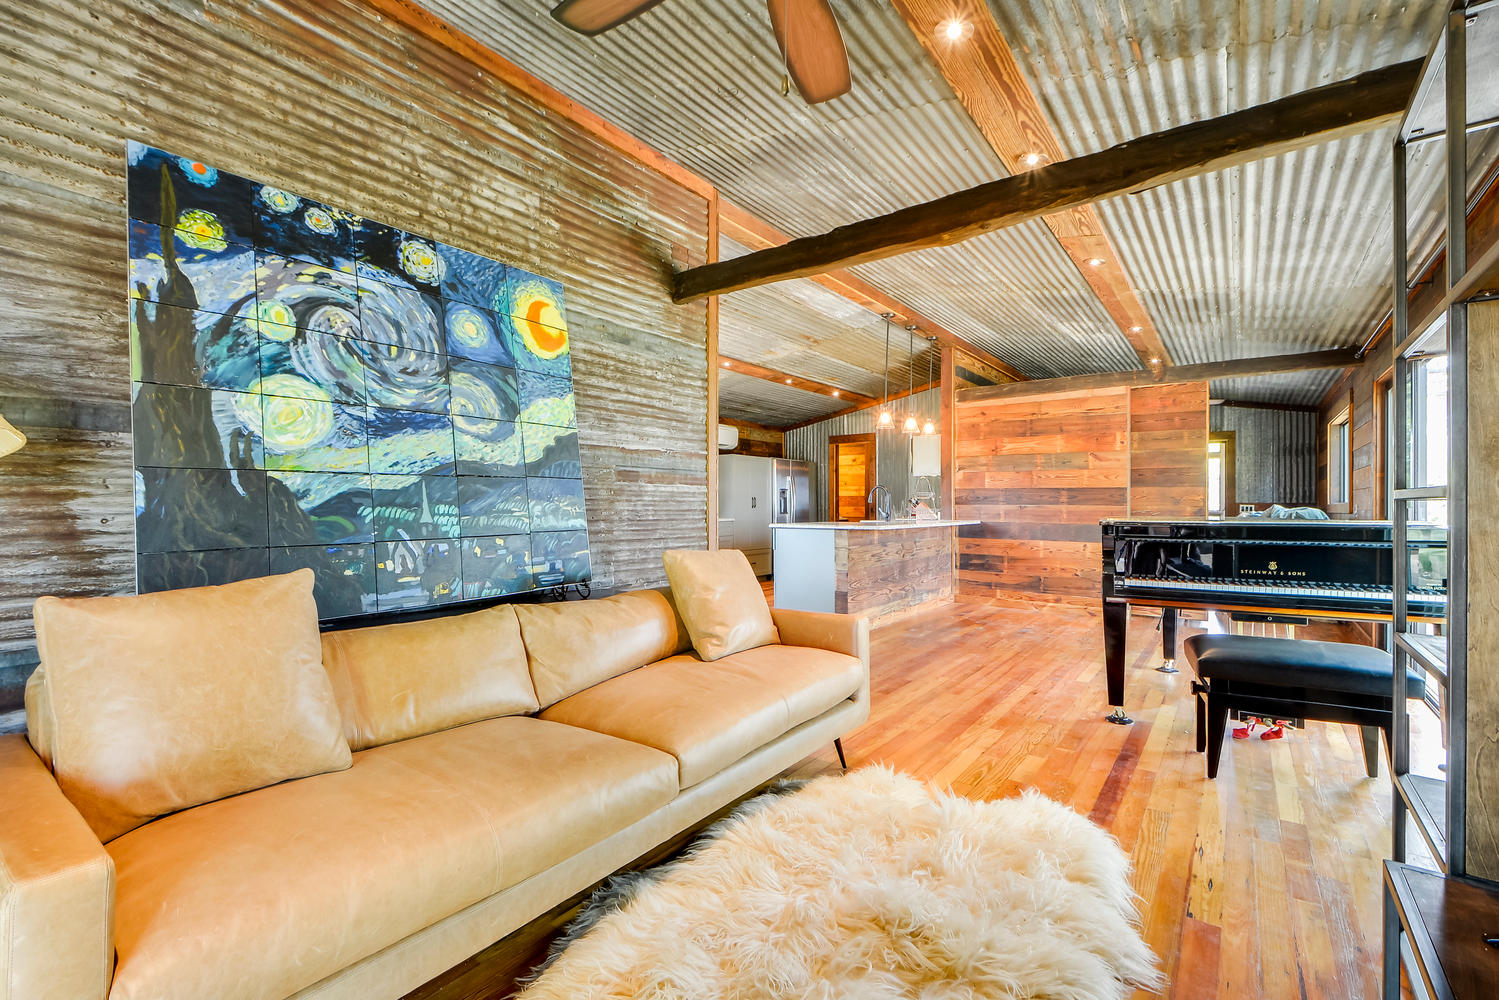 Interior of a small modular home by Reclaimed Space with a baby grand piano and seven foot sofa.